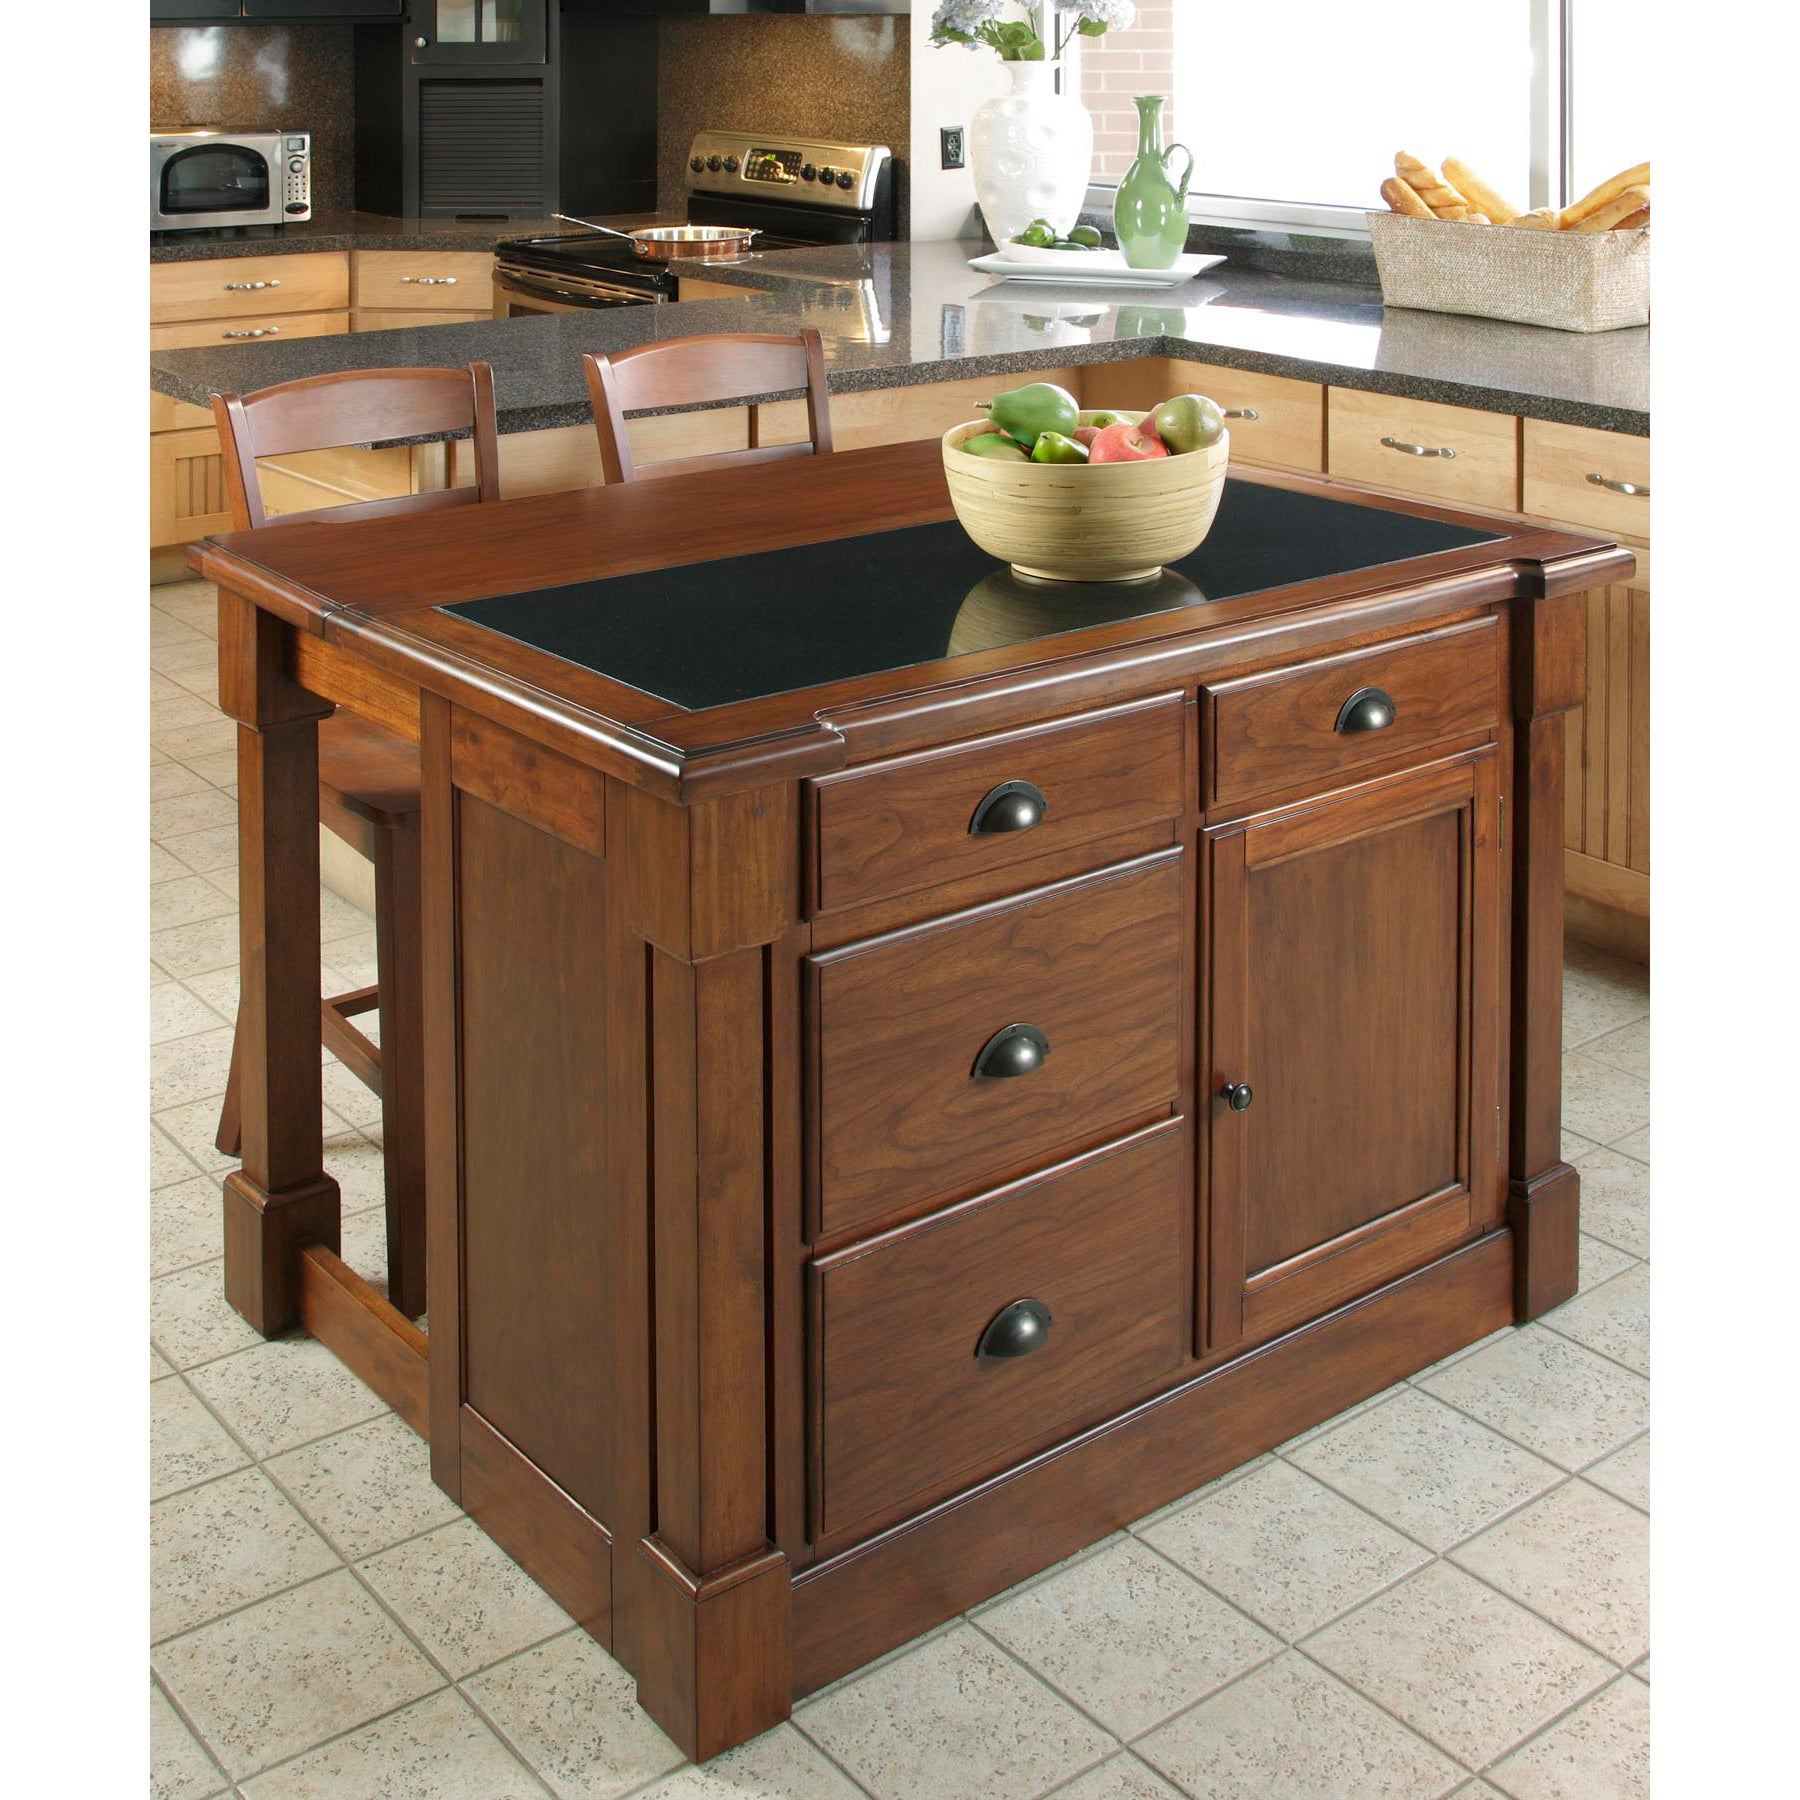 Aspen Kitchen Island Granite Top with Two Stools by Home Styles